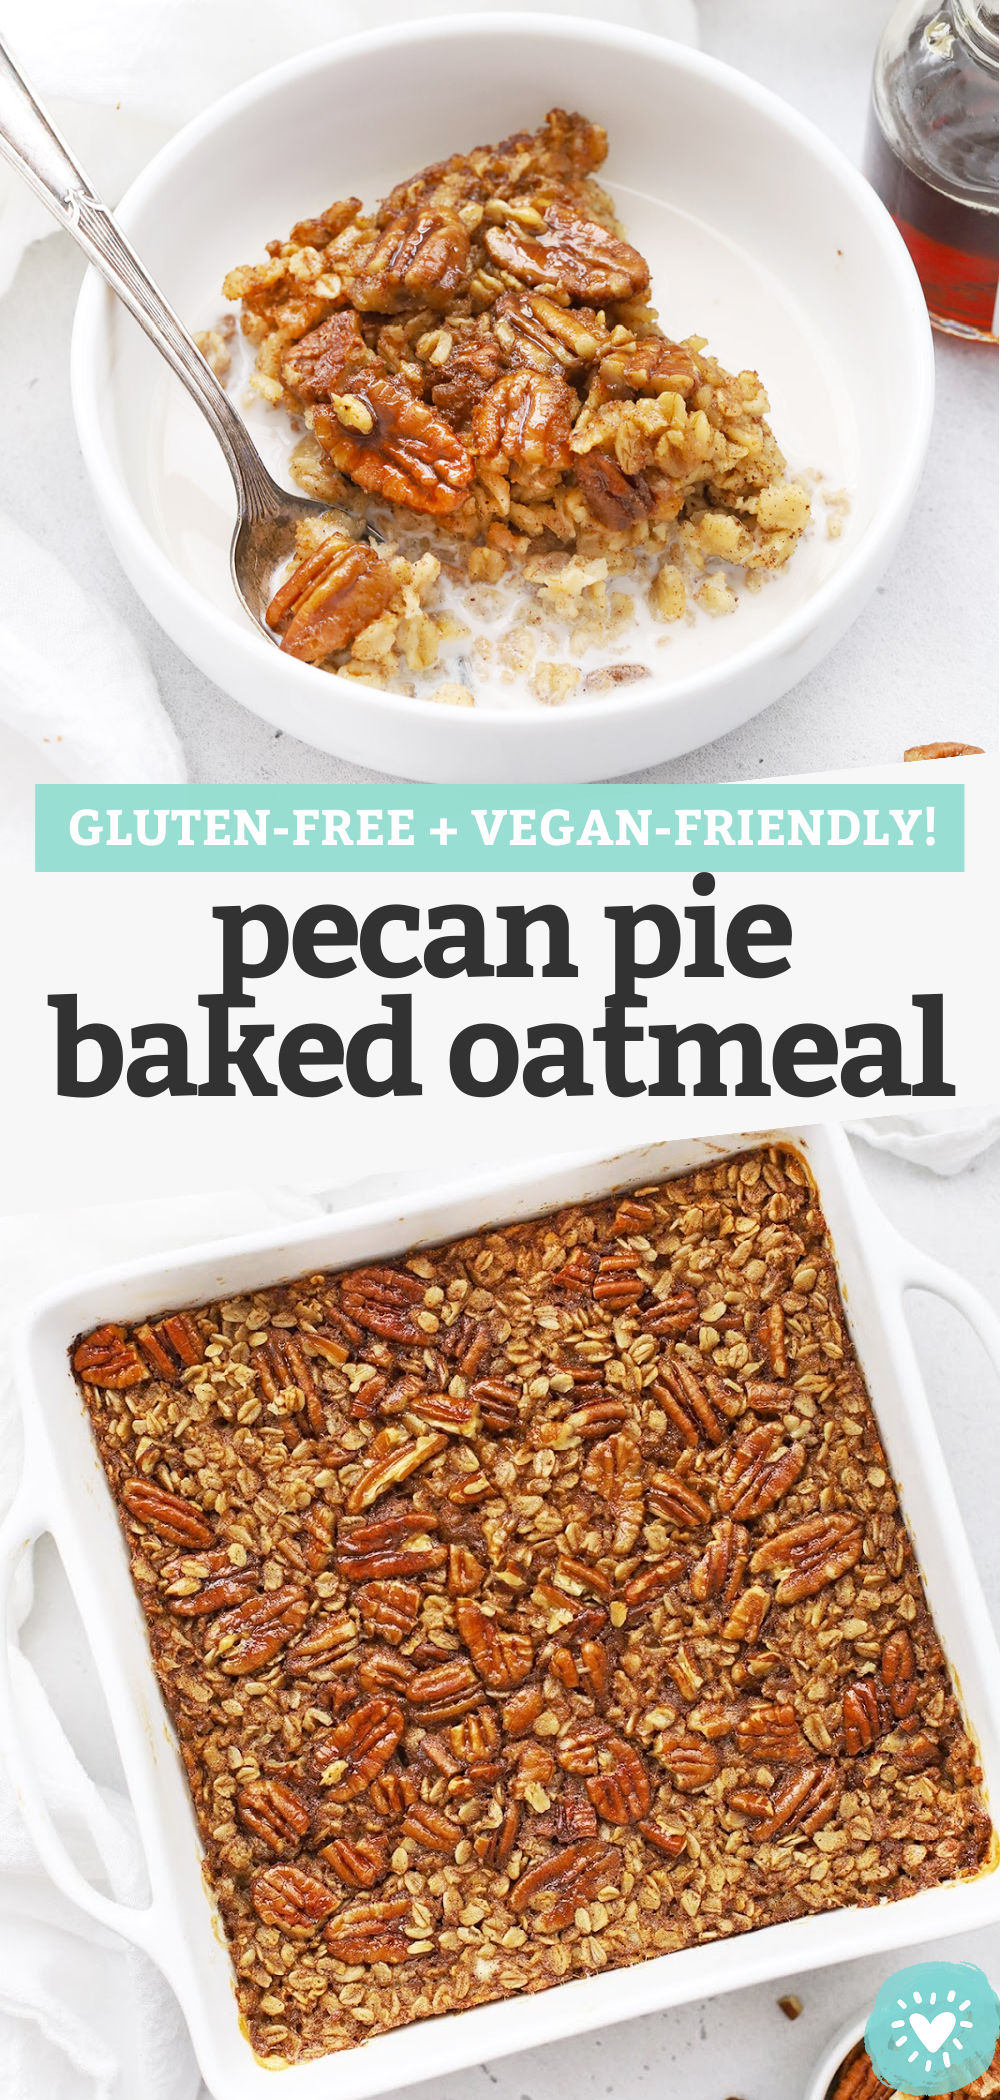 Pecan Pie Baked Oatmeal - This cozy pecan baked oatmeal recipe has notes of cinnamon, vanilla, maple, and pecans to make a delicious meal-prep breakfast your whole family will fall in love with. (Gluten-Free, Vegan-Friendly) // cinnamon pecan oatmeal // baked oatmeal recipe // meal prep breakfast // fall recipe // vegan breakfast // gluten-free breakfast #glutenfree #vegan #bakedoatmeal #oatmeal